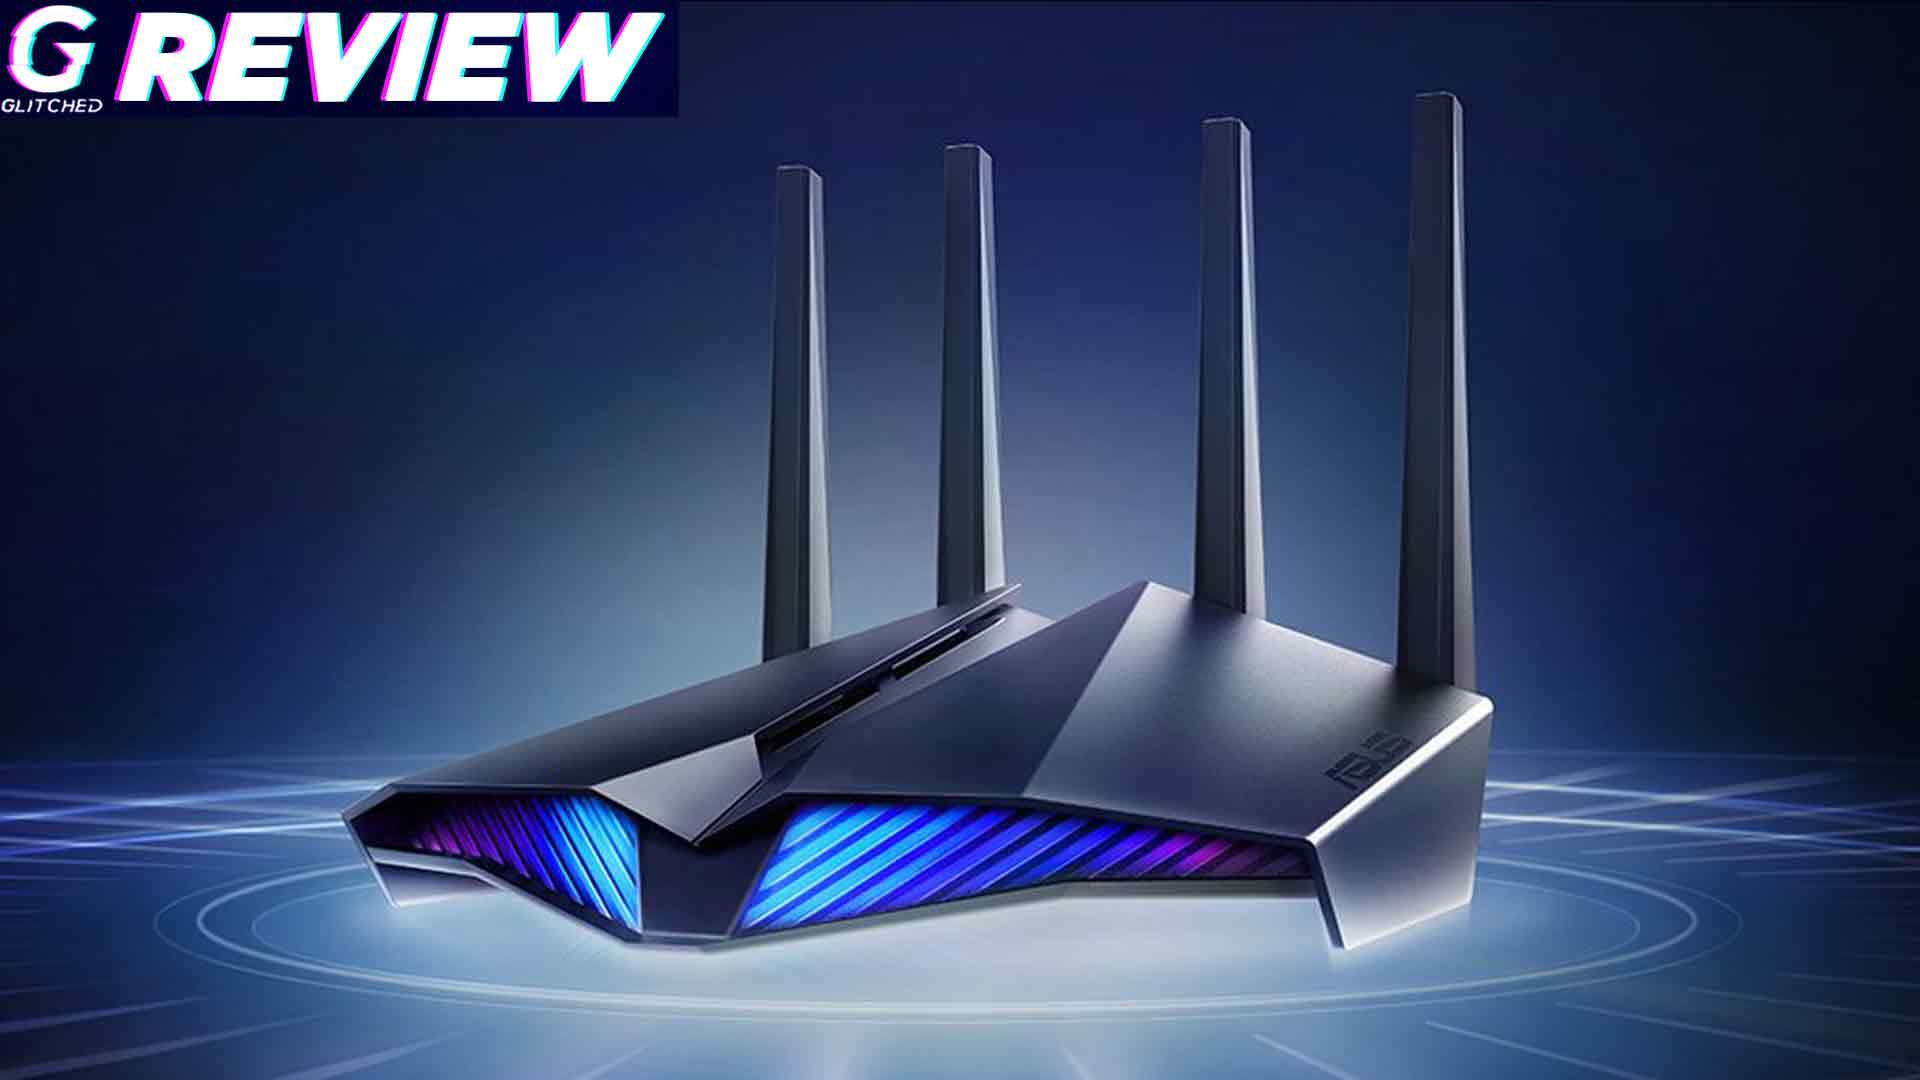 ASUS RT-AX82U WiFi 6 Router Review – Made For Busy Gaming Households